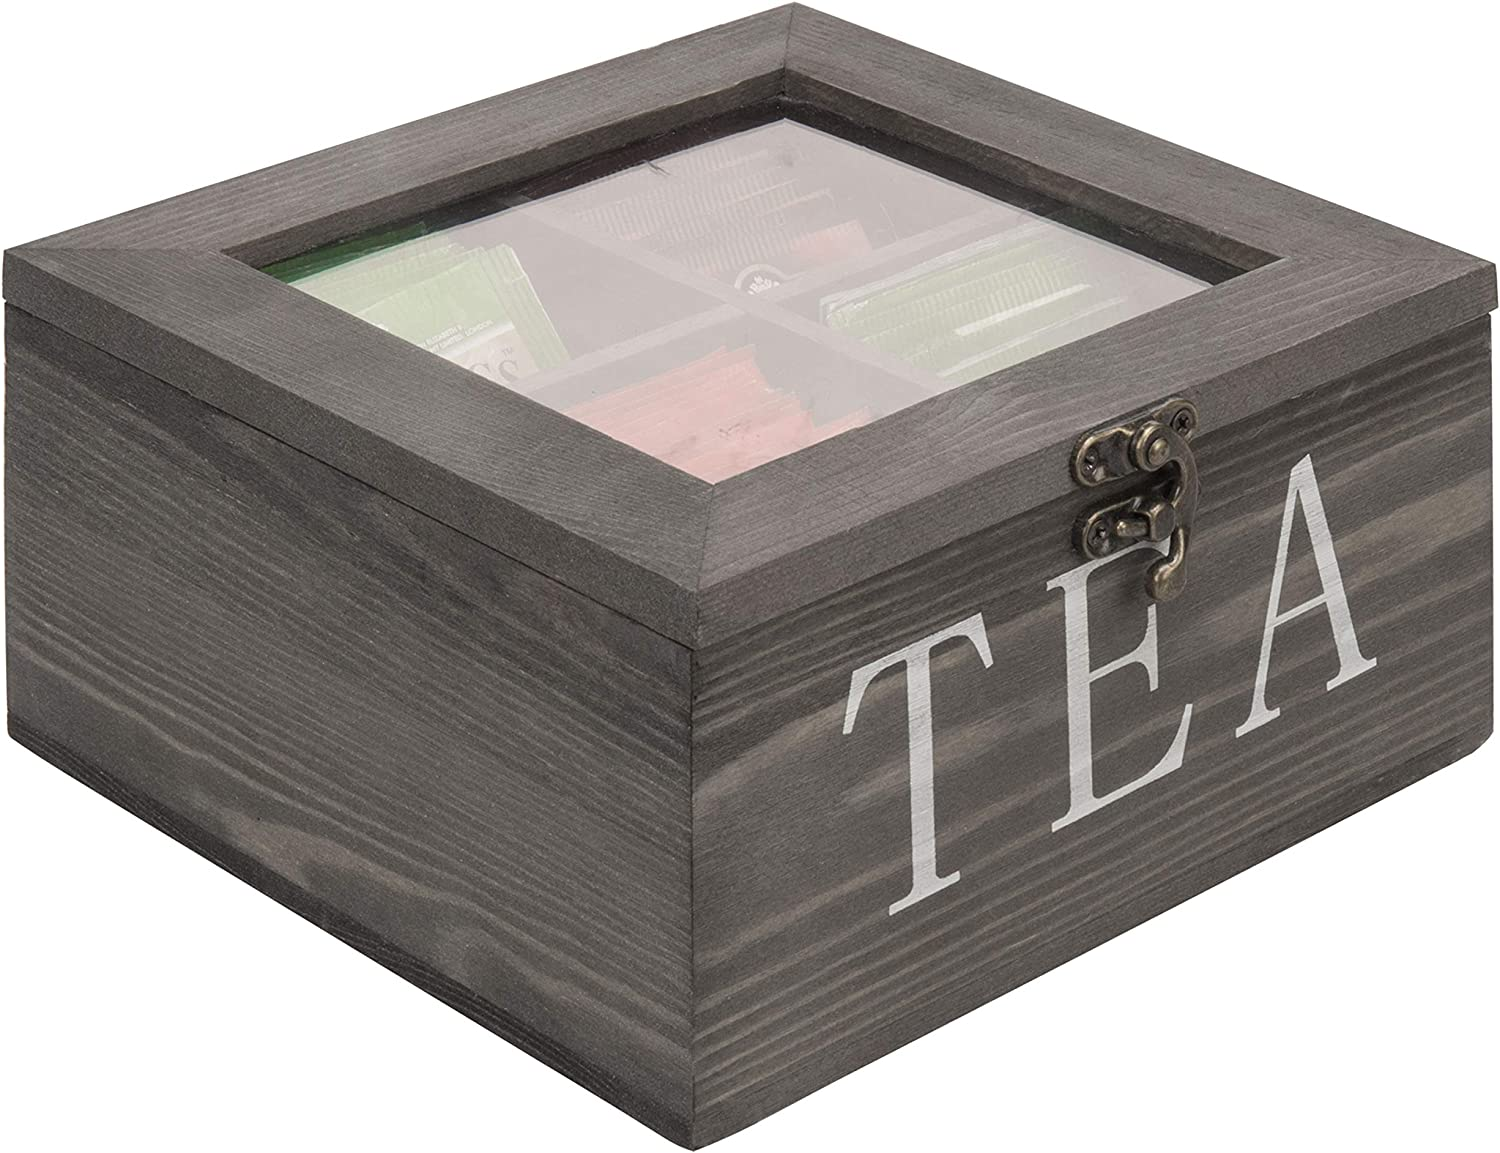 MyGift 4-Slot Max 83% OFF Rustic Grey Wood Tea with Clear Low price Bag Storage Chest